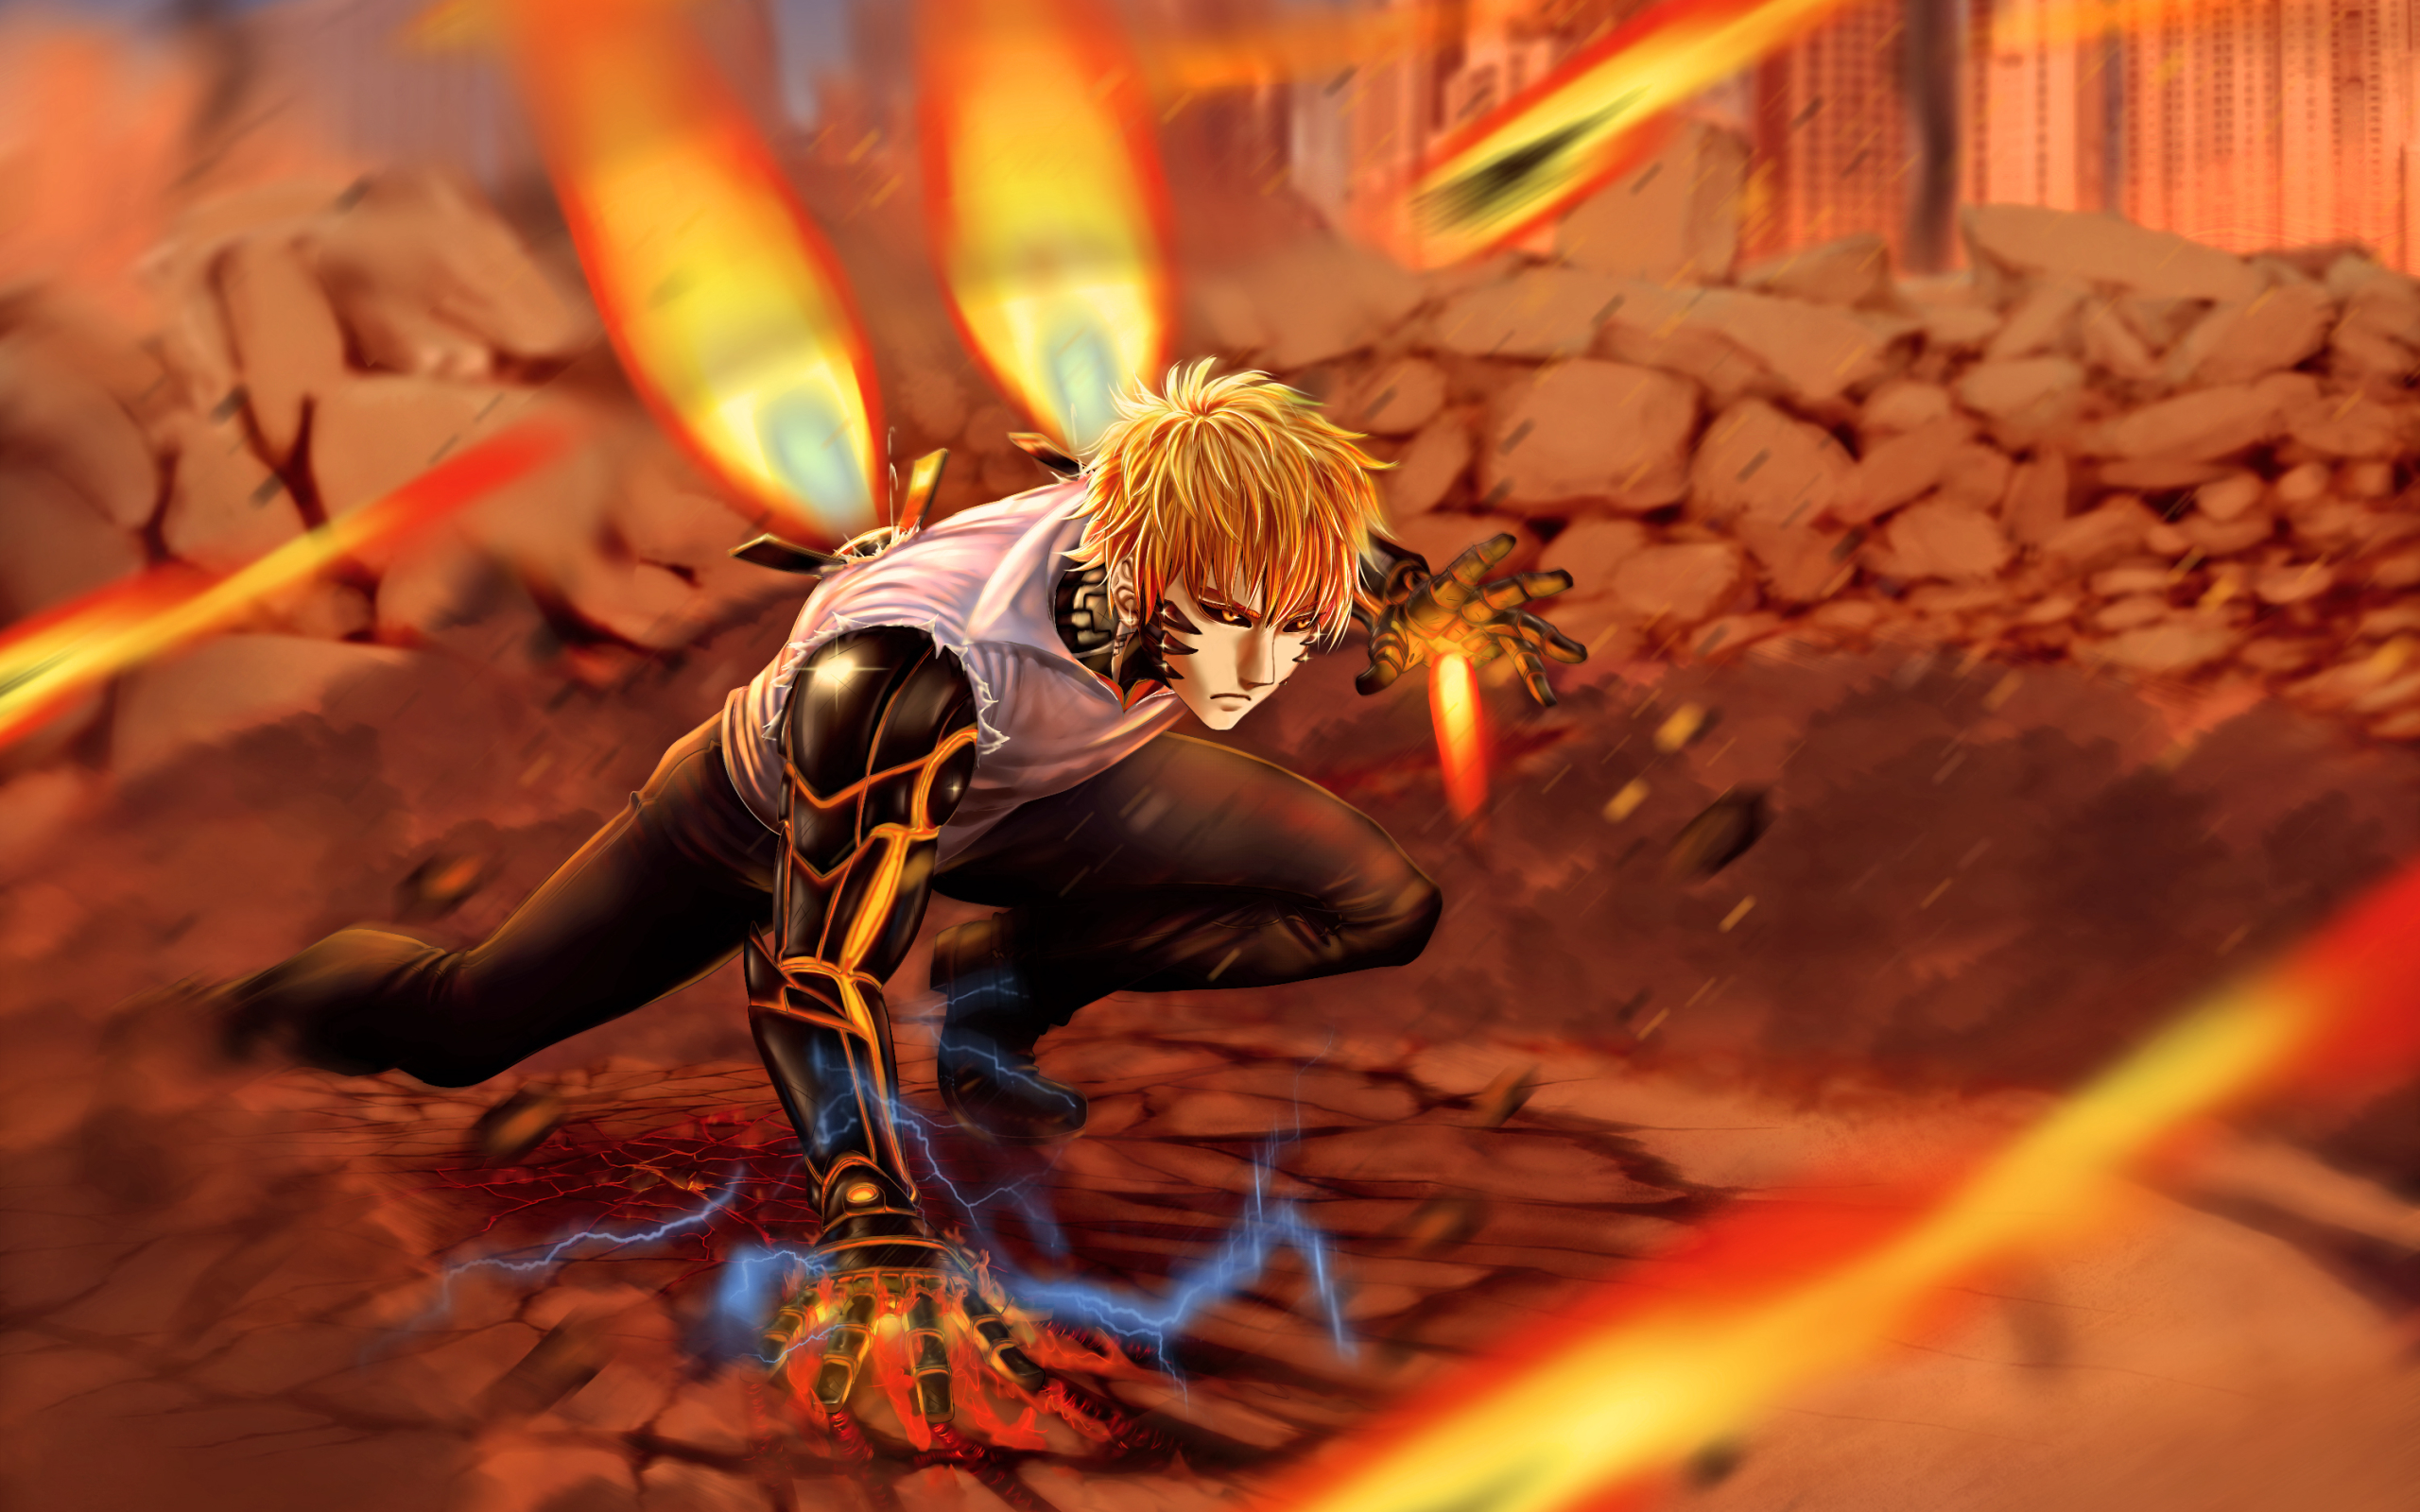 Wallpaper Of Anime Blonde Cyborg Genos One Punch Man